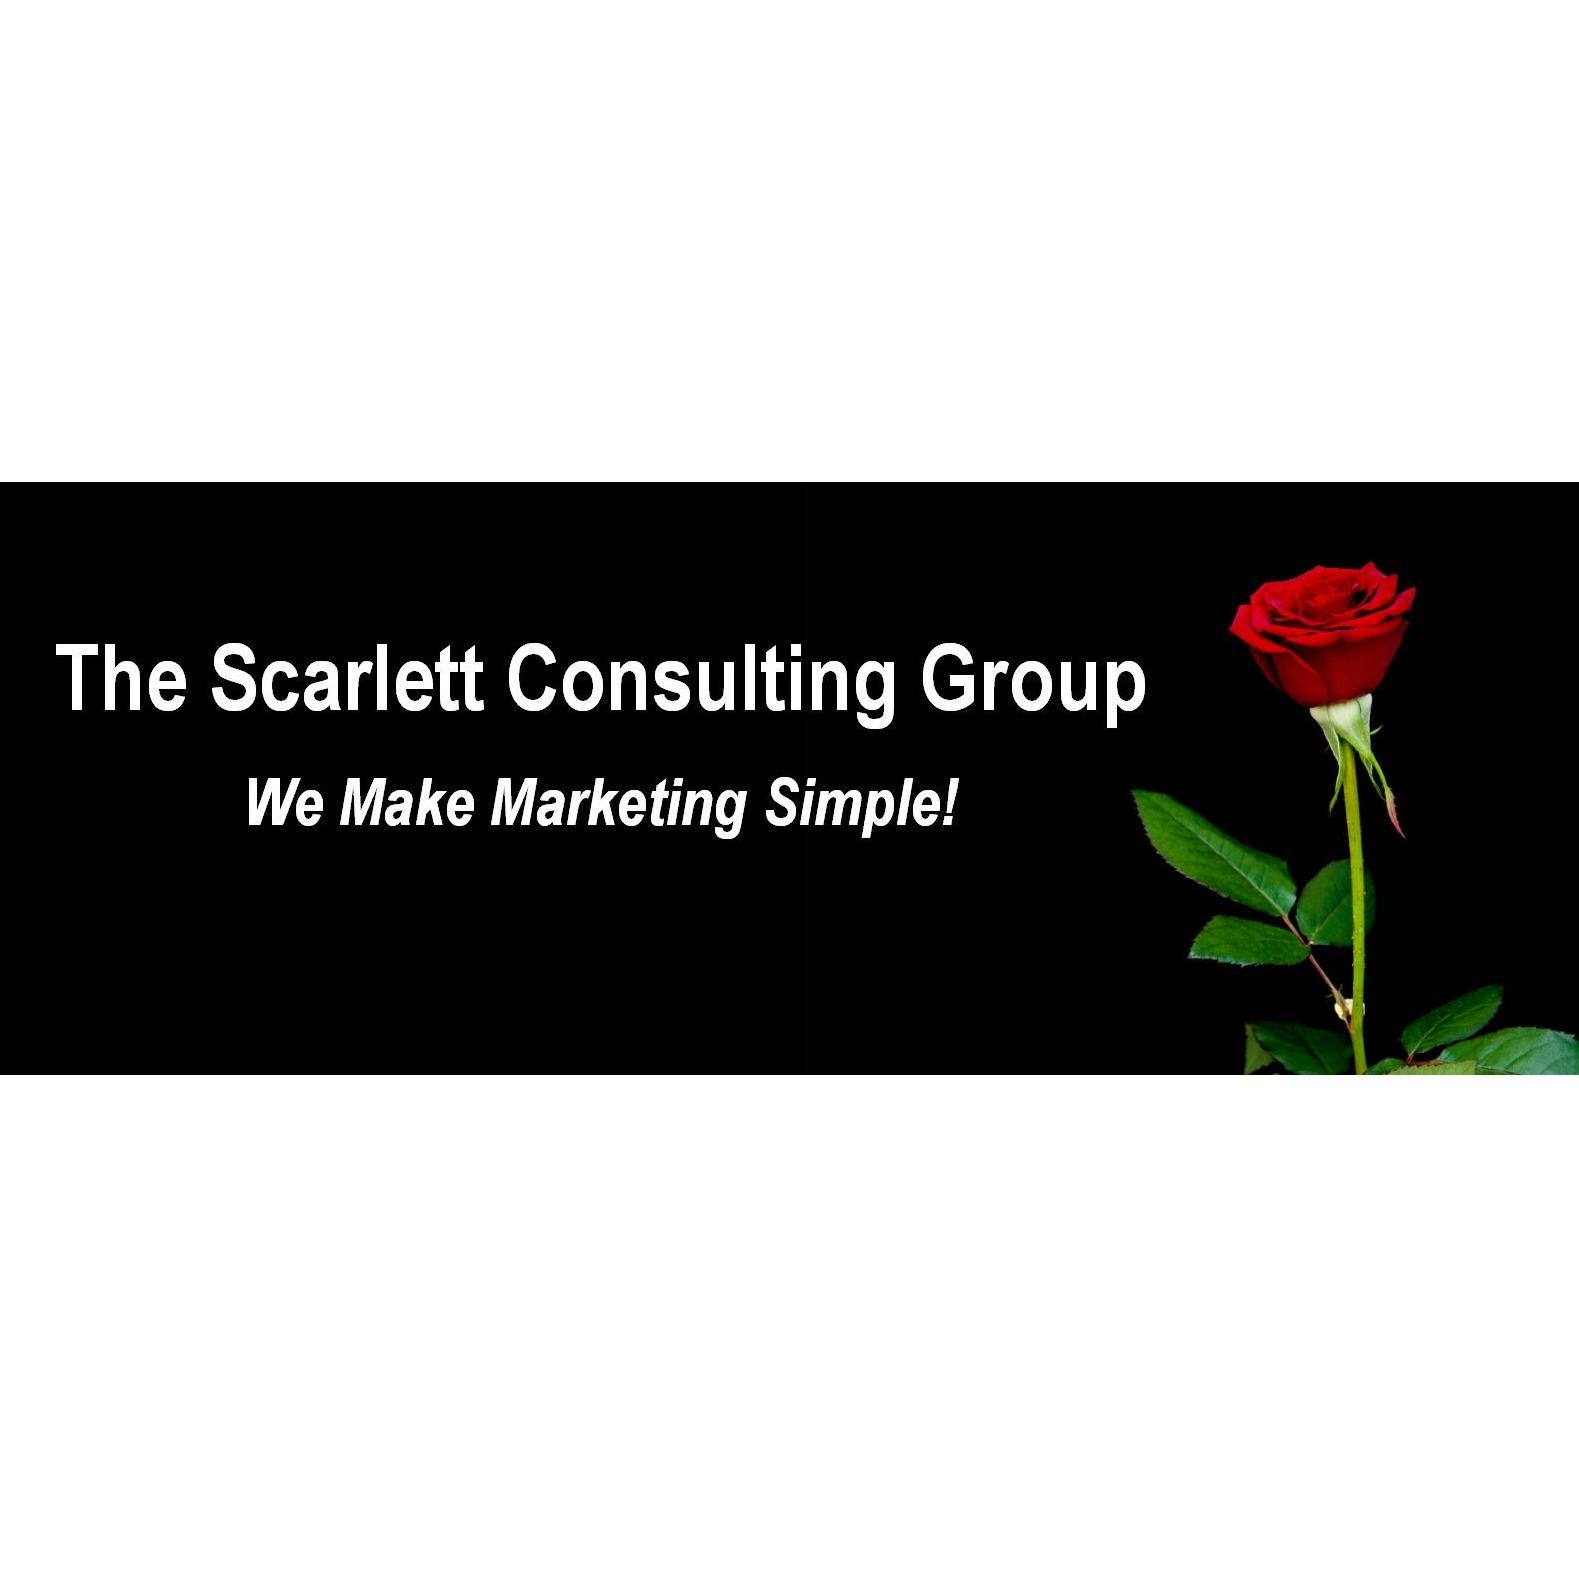 Scarlett Consulting Group image 6